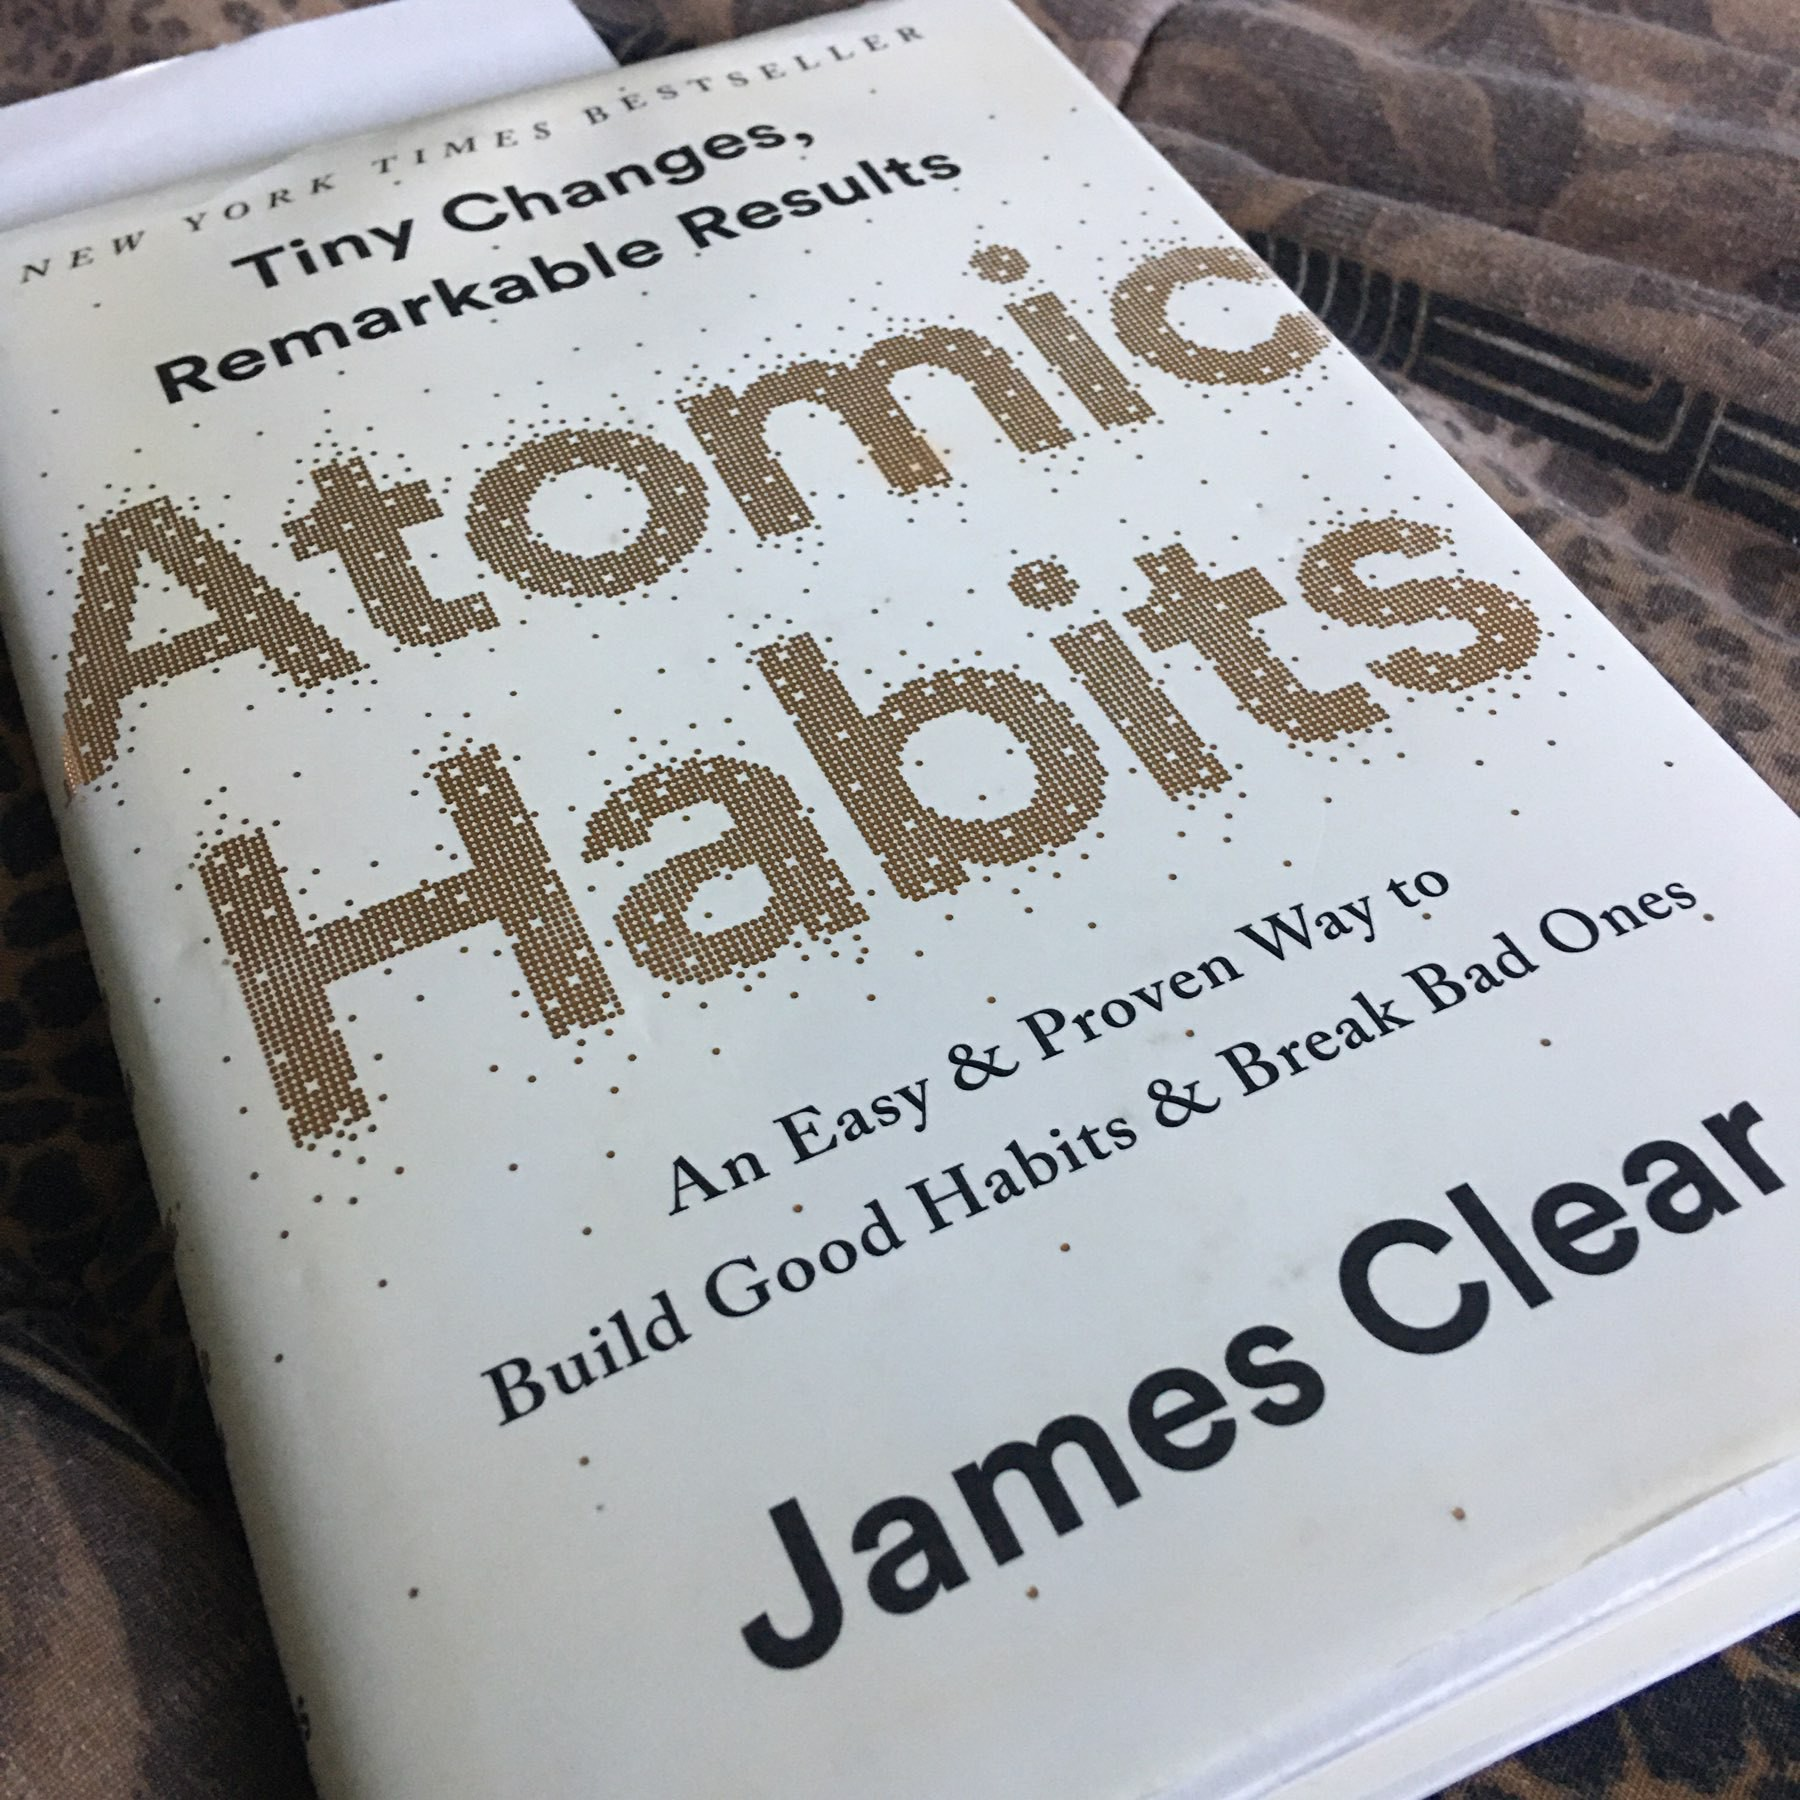 Atomic Habits by James Clear.